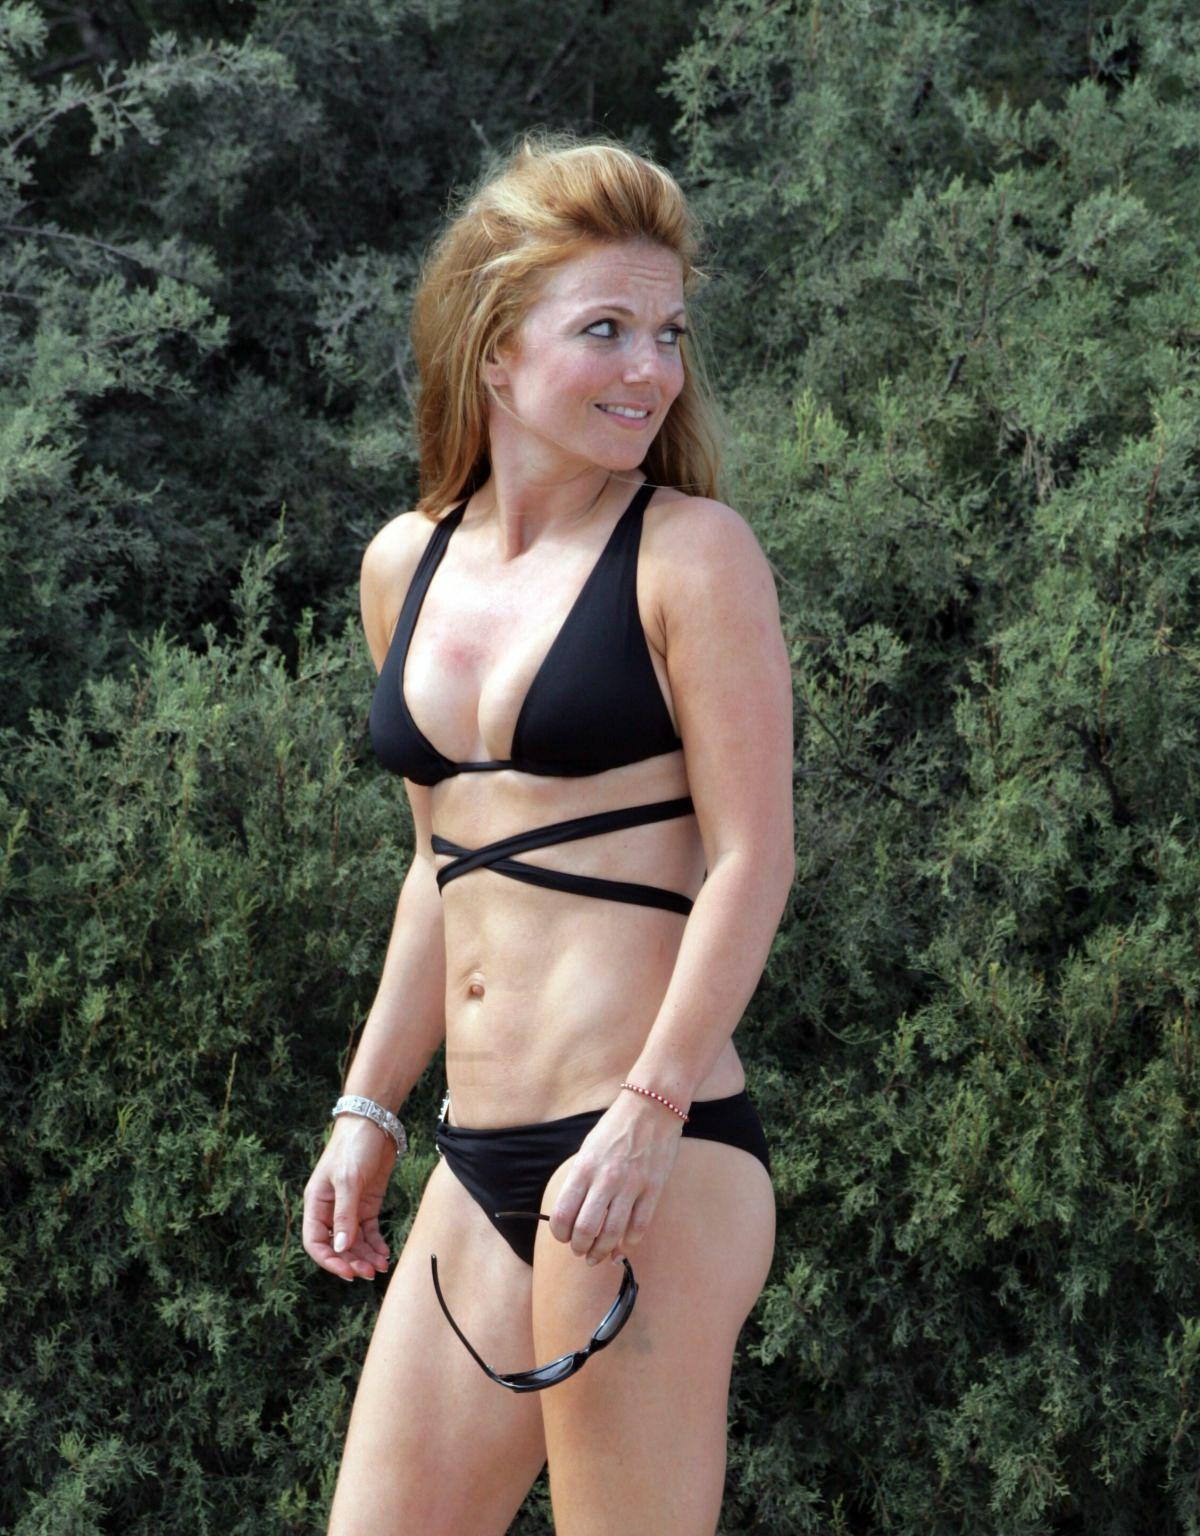 Geri Halliwell Nude Pics geri halliwell nude - page 8 pictures, naked, oops, topless